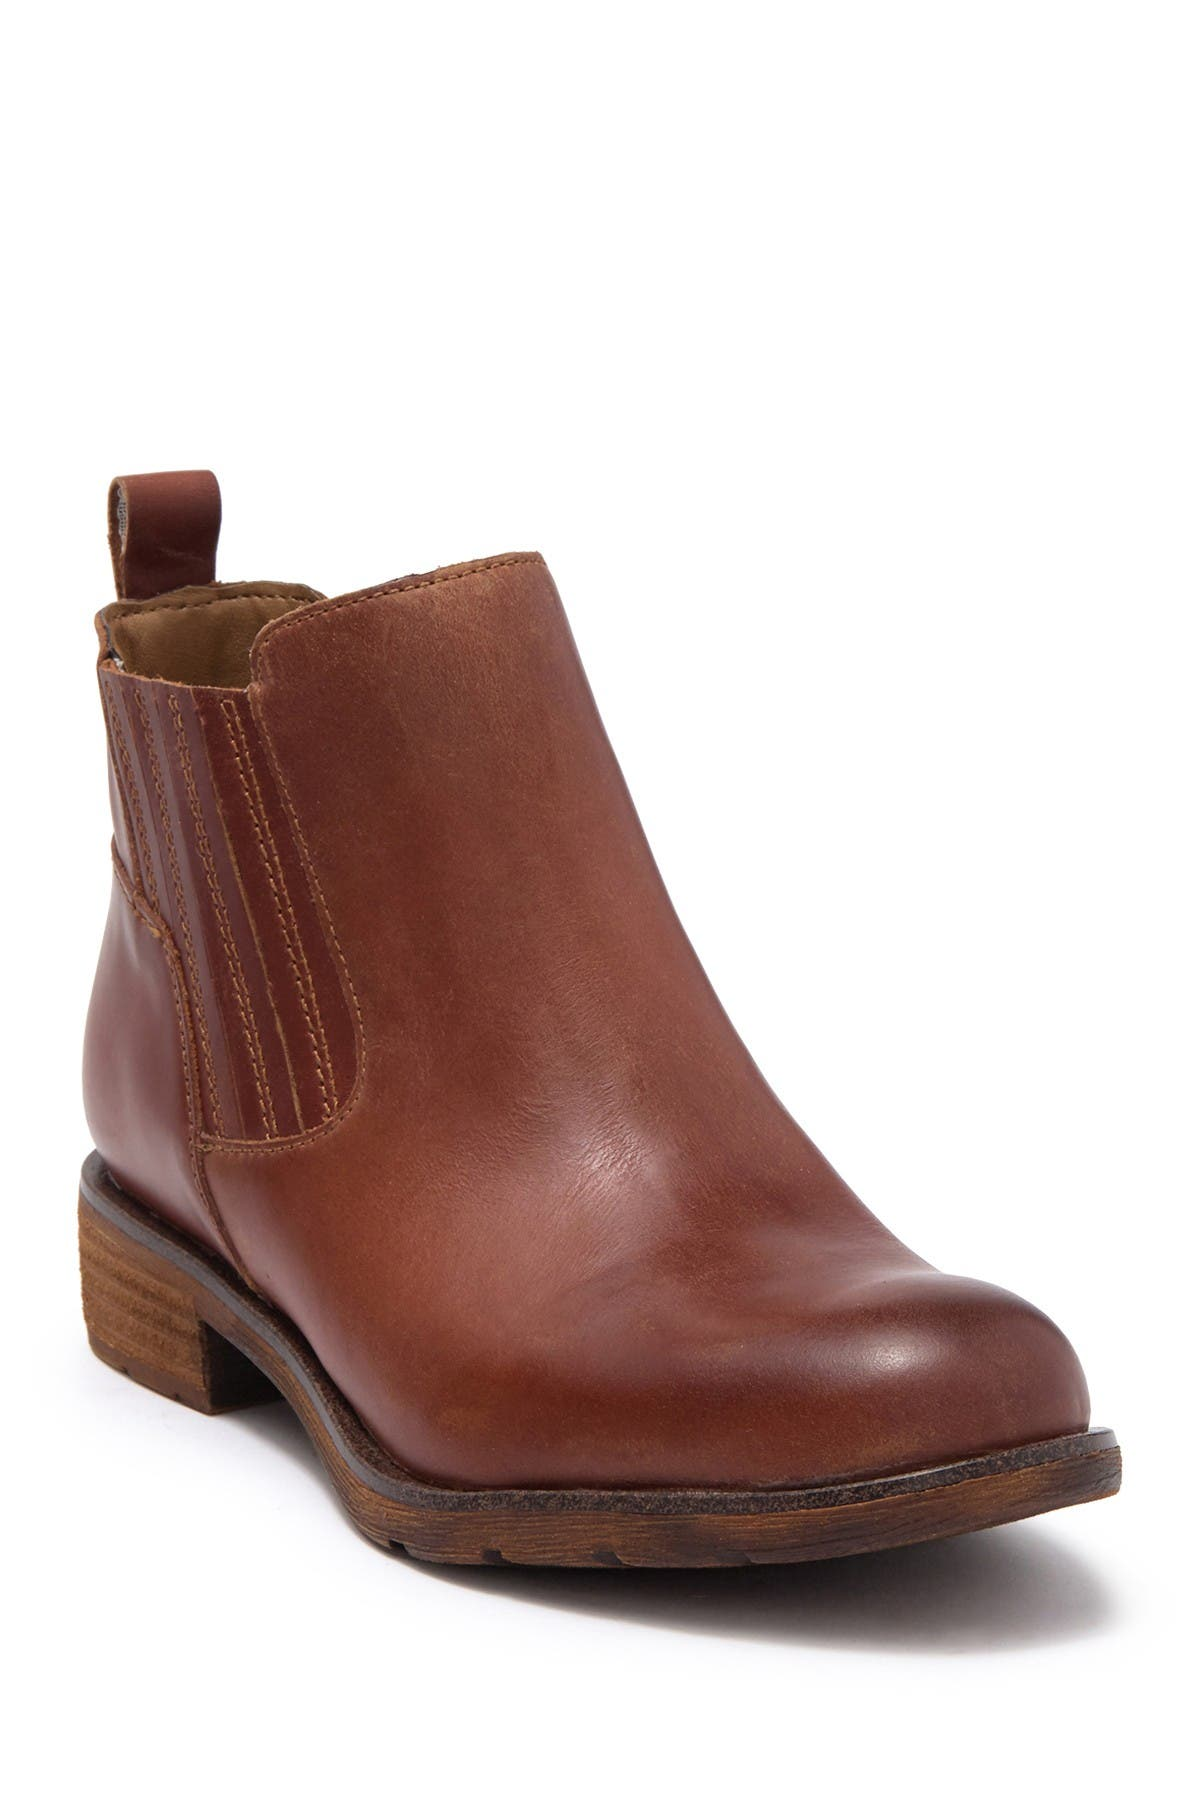 Image of Sofft Brandi Leather Chelsea Boot